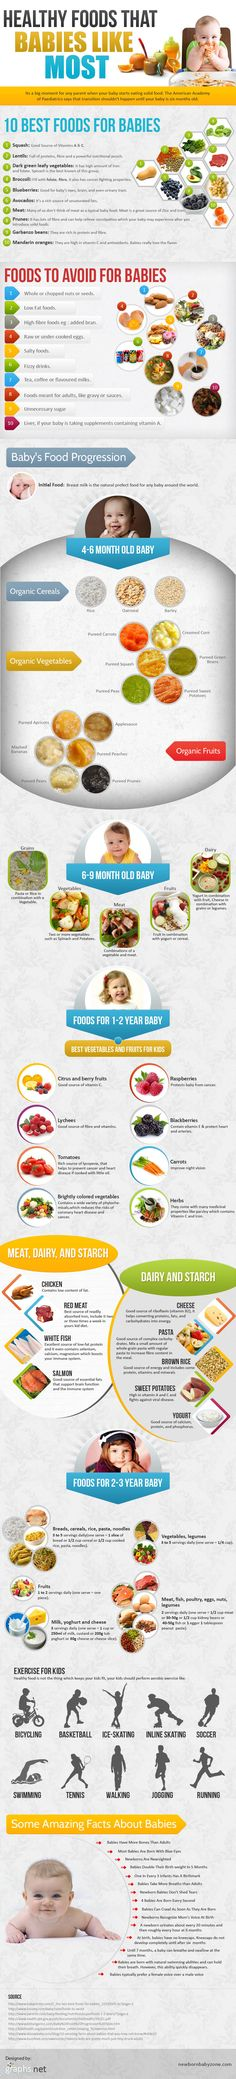 Healthy Foods that Babies Like